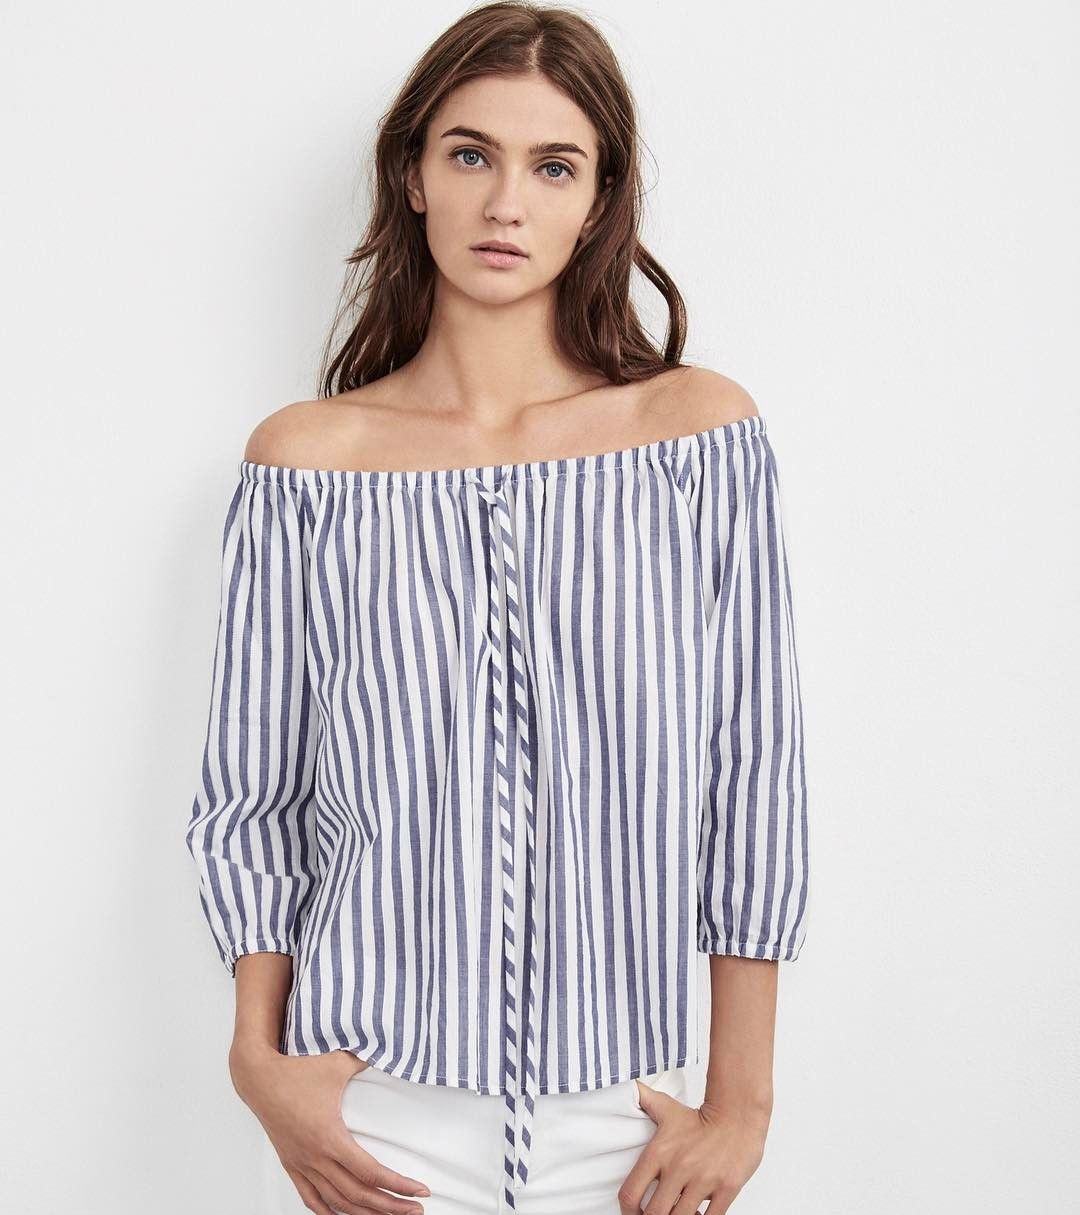 Velvet By Graham & Spencer Woman Cold-shoulder Gingham Woven Top Blue Size S Velvet Professional Cheap Price Clearance Factory Outlet Cheap Sale How Much Cheap Brand New Unisex Cheap New Styles rM46JDcPPr